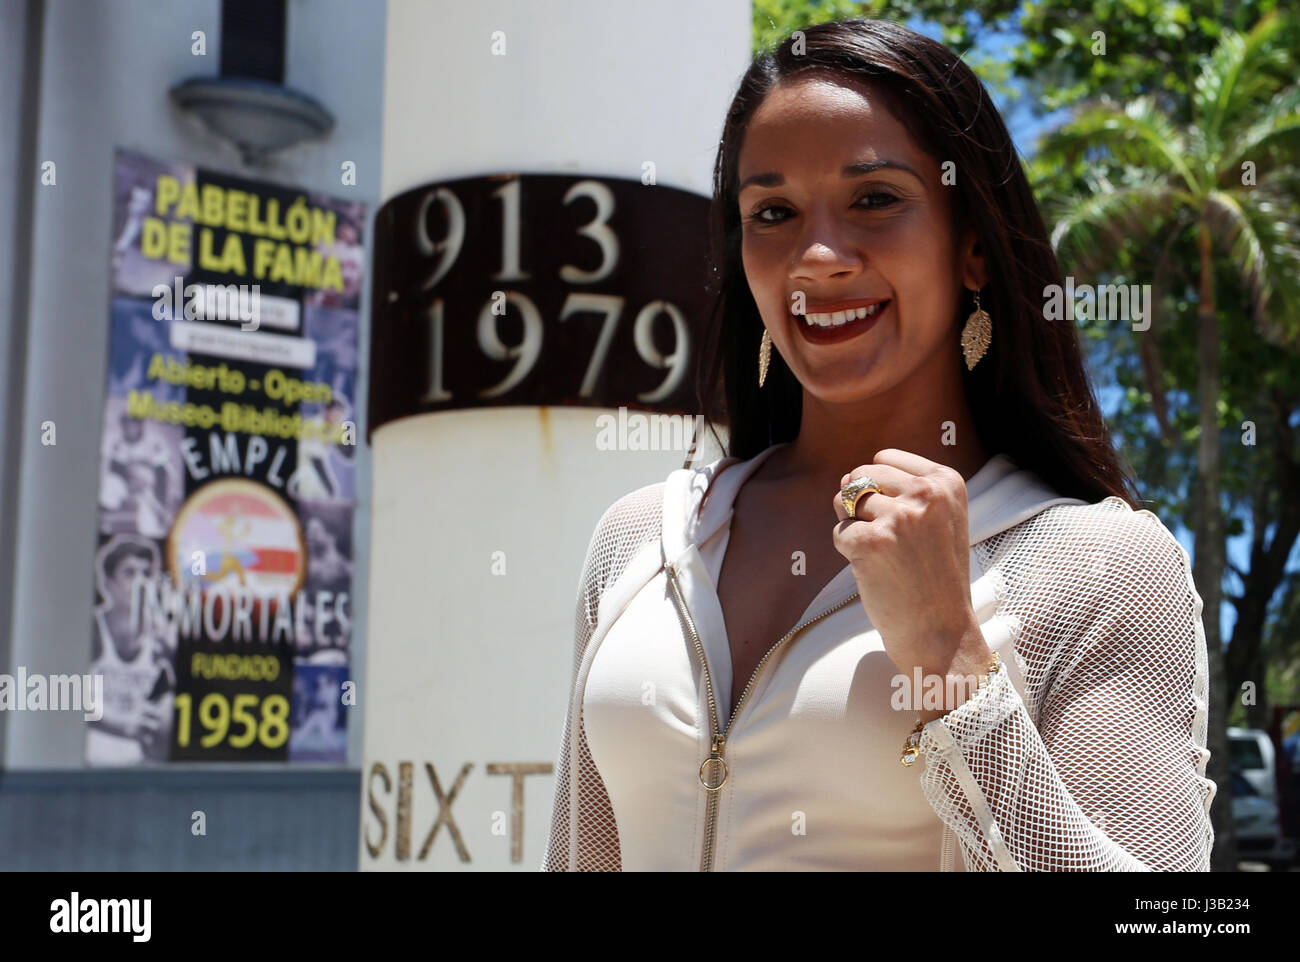 Puerto Rican boxer Amanda Serrano poses with her ring from the rooster weight division of the World Boxing Organization - Stock Image